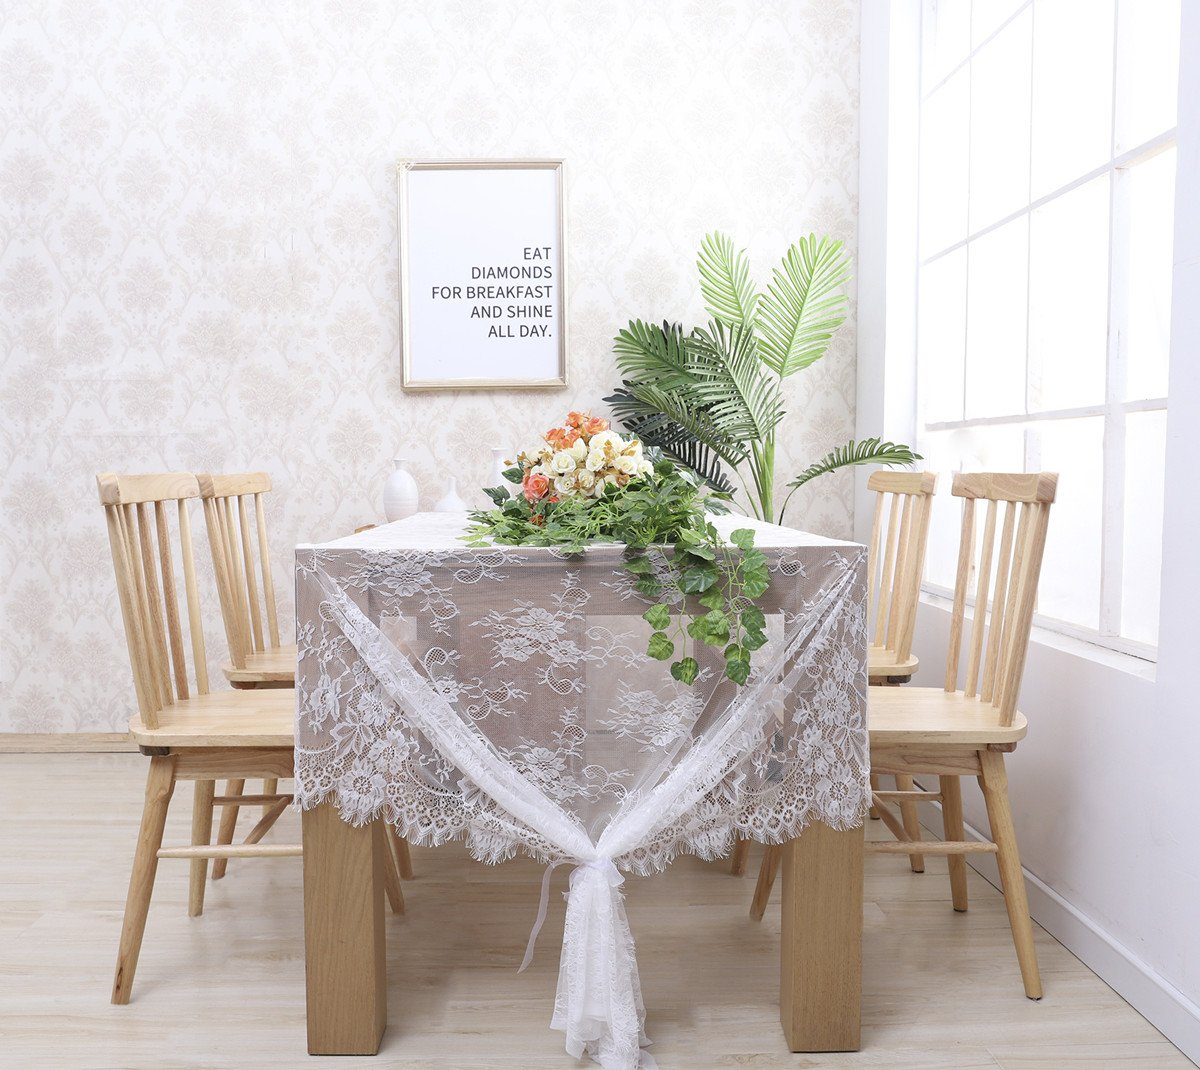 """B-COOL 60"""" X120"""" Classic White Wedding Lace Tablecloth Lace Tablecloth Overlay Vintage Embroidered Lace Overlay for Rustic Wedding Vintage Reception Decor Spring Summer Outdoor Party Boho Party Decor - Top Material: soft touch High Quality LACE both Comfortable and Durable. Beautiful Design: flower intricate lace design vintage embroidered lace fabric adds extra elegance to your wedding Chic£¦Romantic: vintage white LACE Table Cloth, classic and pretty, best choice for Rustic wedding, romantic candlelight dinner, bridal shower, baby shower, birthday party or everyday use! - tablecloths, kitchen-dining-room-table-linens, kitchen-dining-room - 71UZPFvcWNL -"""